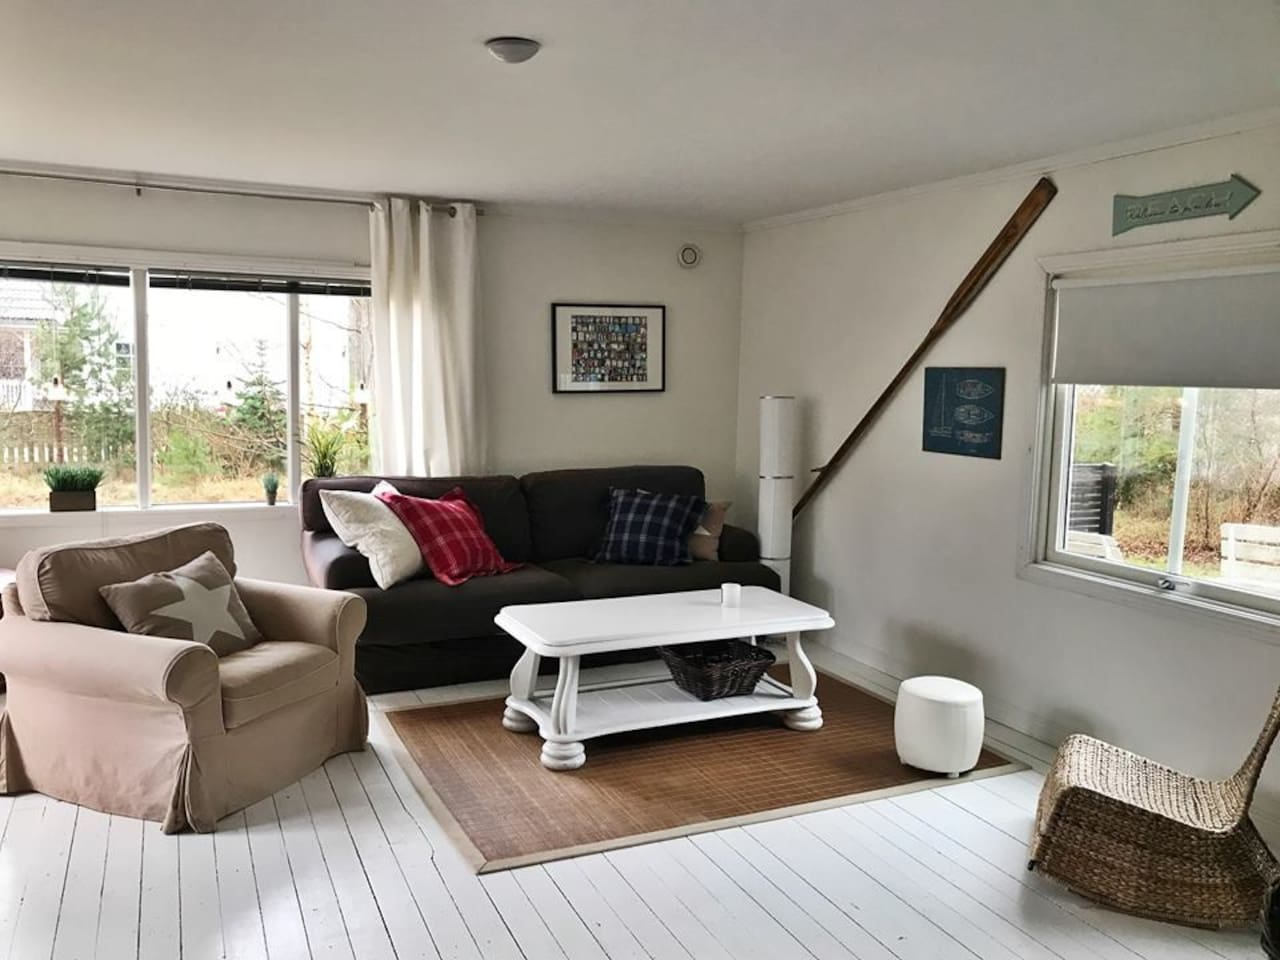 Wintergarten Ffb welcoming cottage to city cottages for rent in